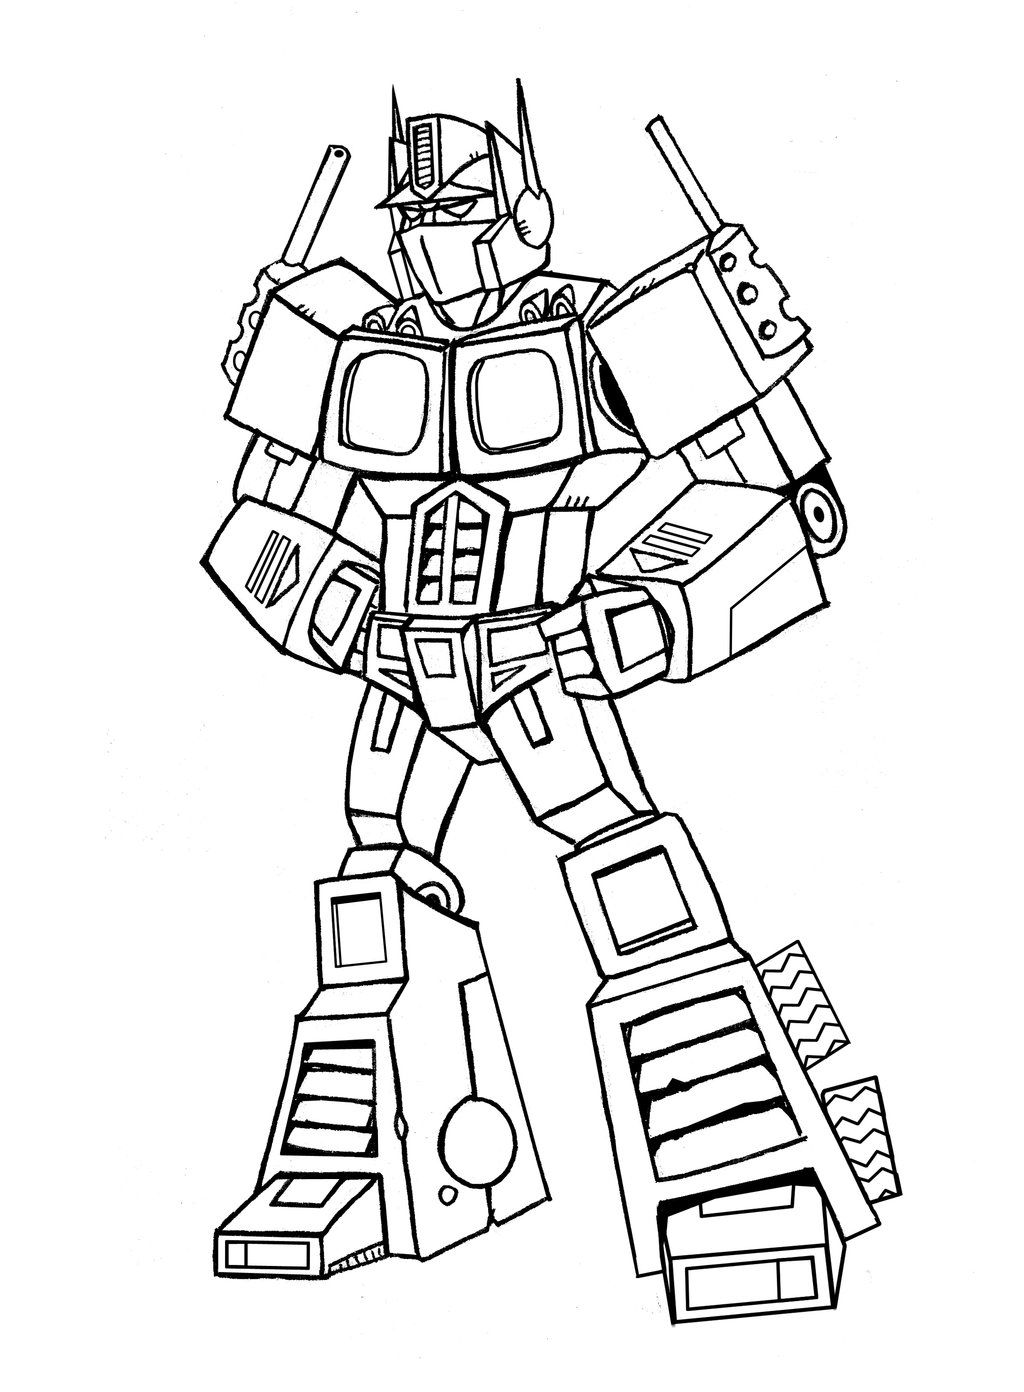 Transformers Rescue Bots Coloring Pages | Tshirt ideas | Pinterest ...